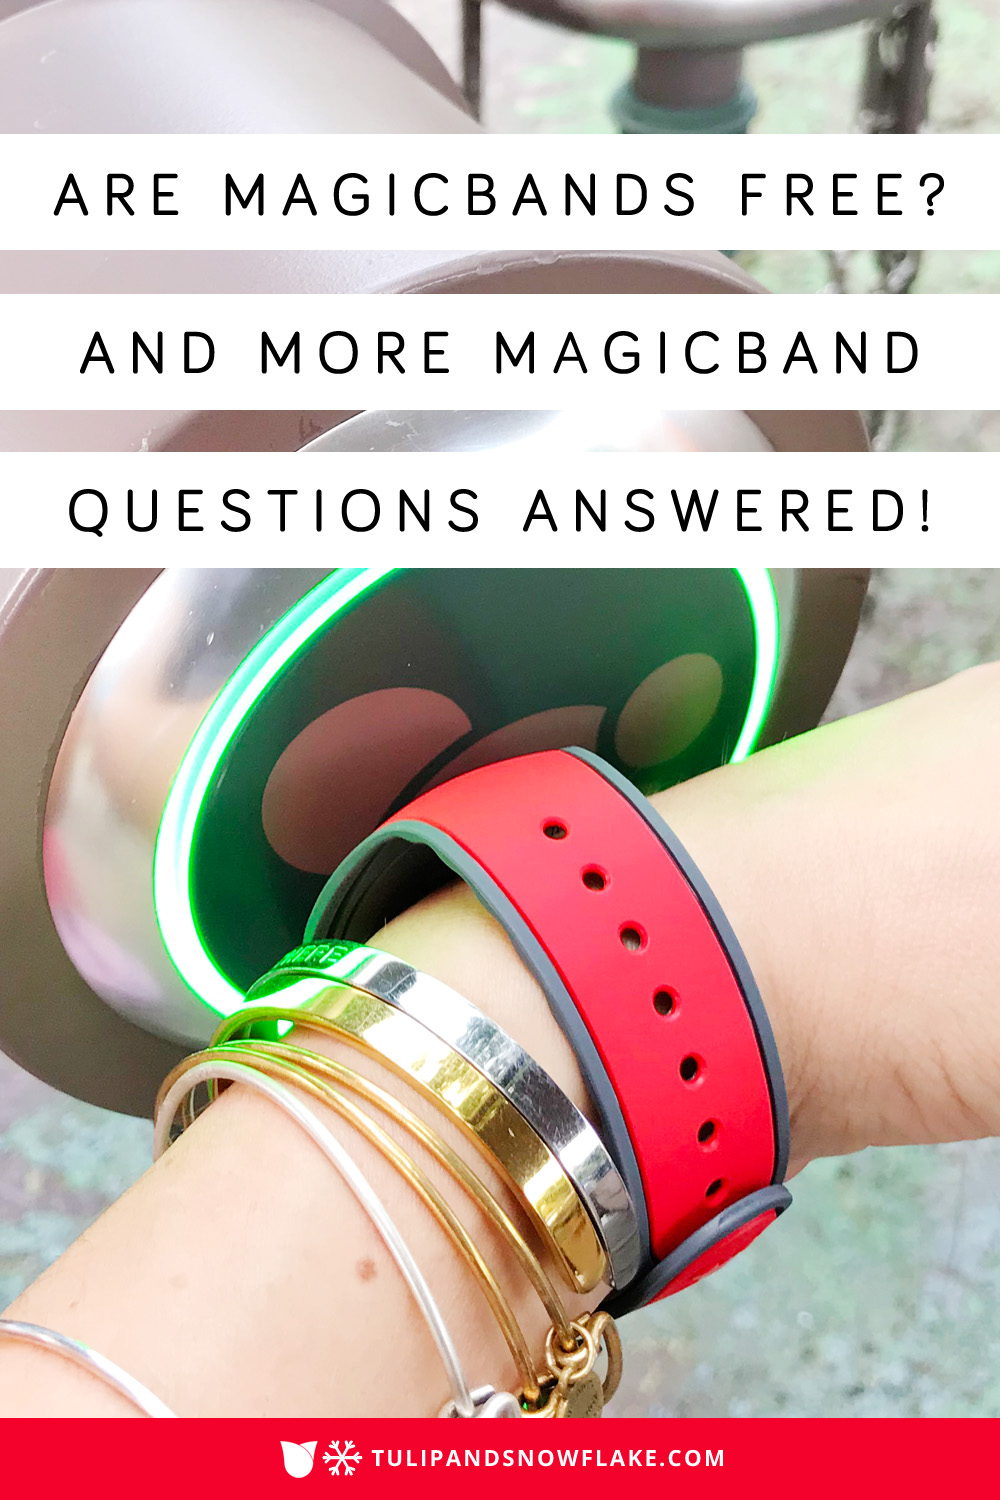 Are MagicBands free?